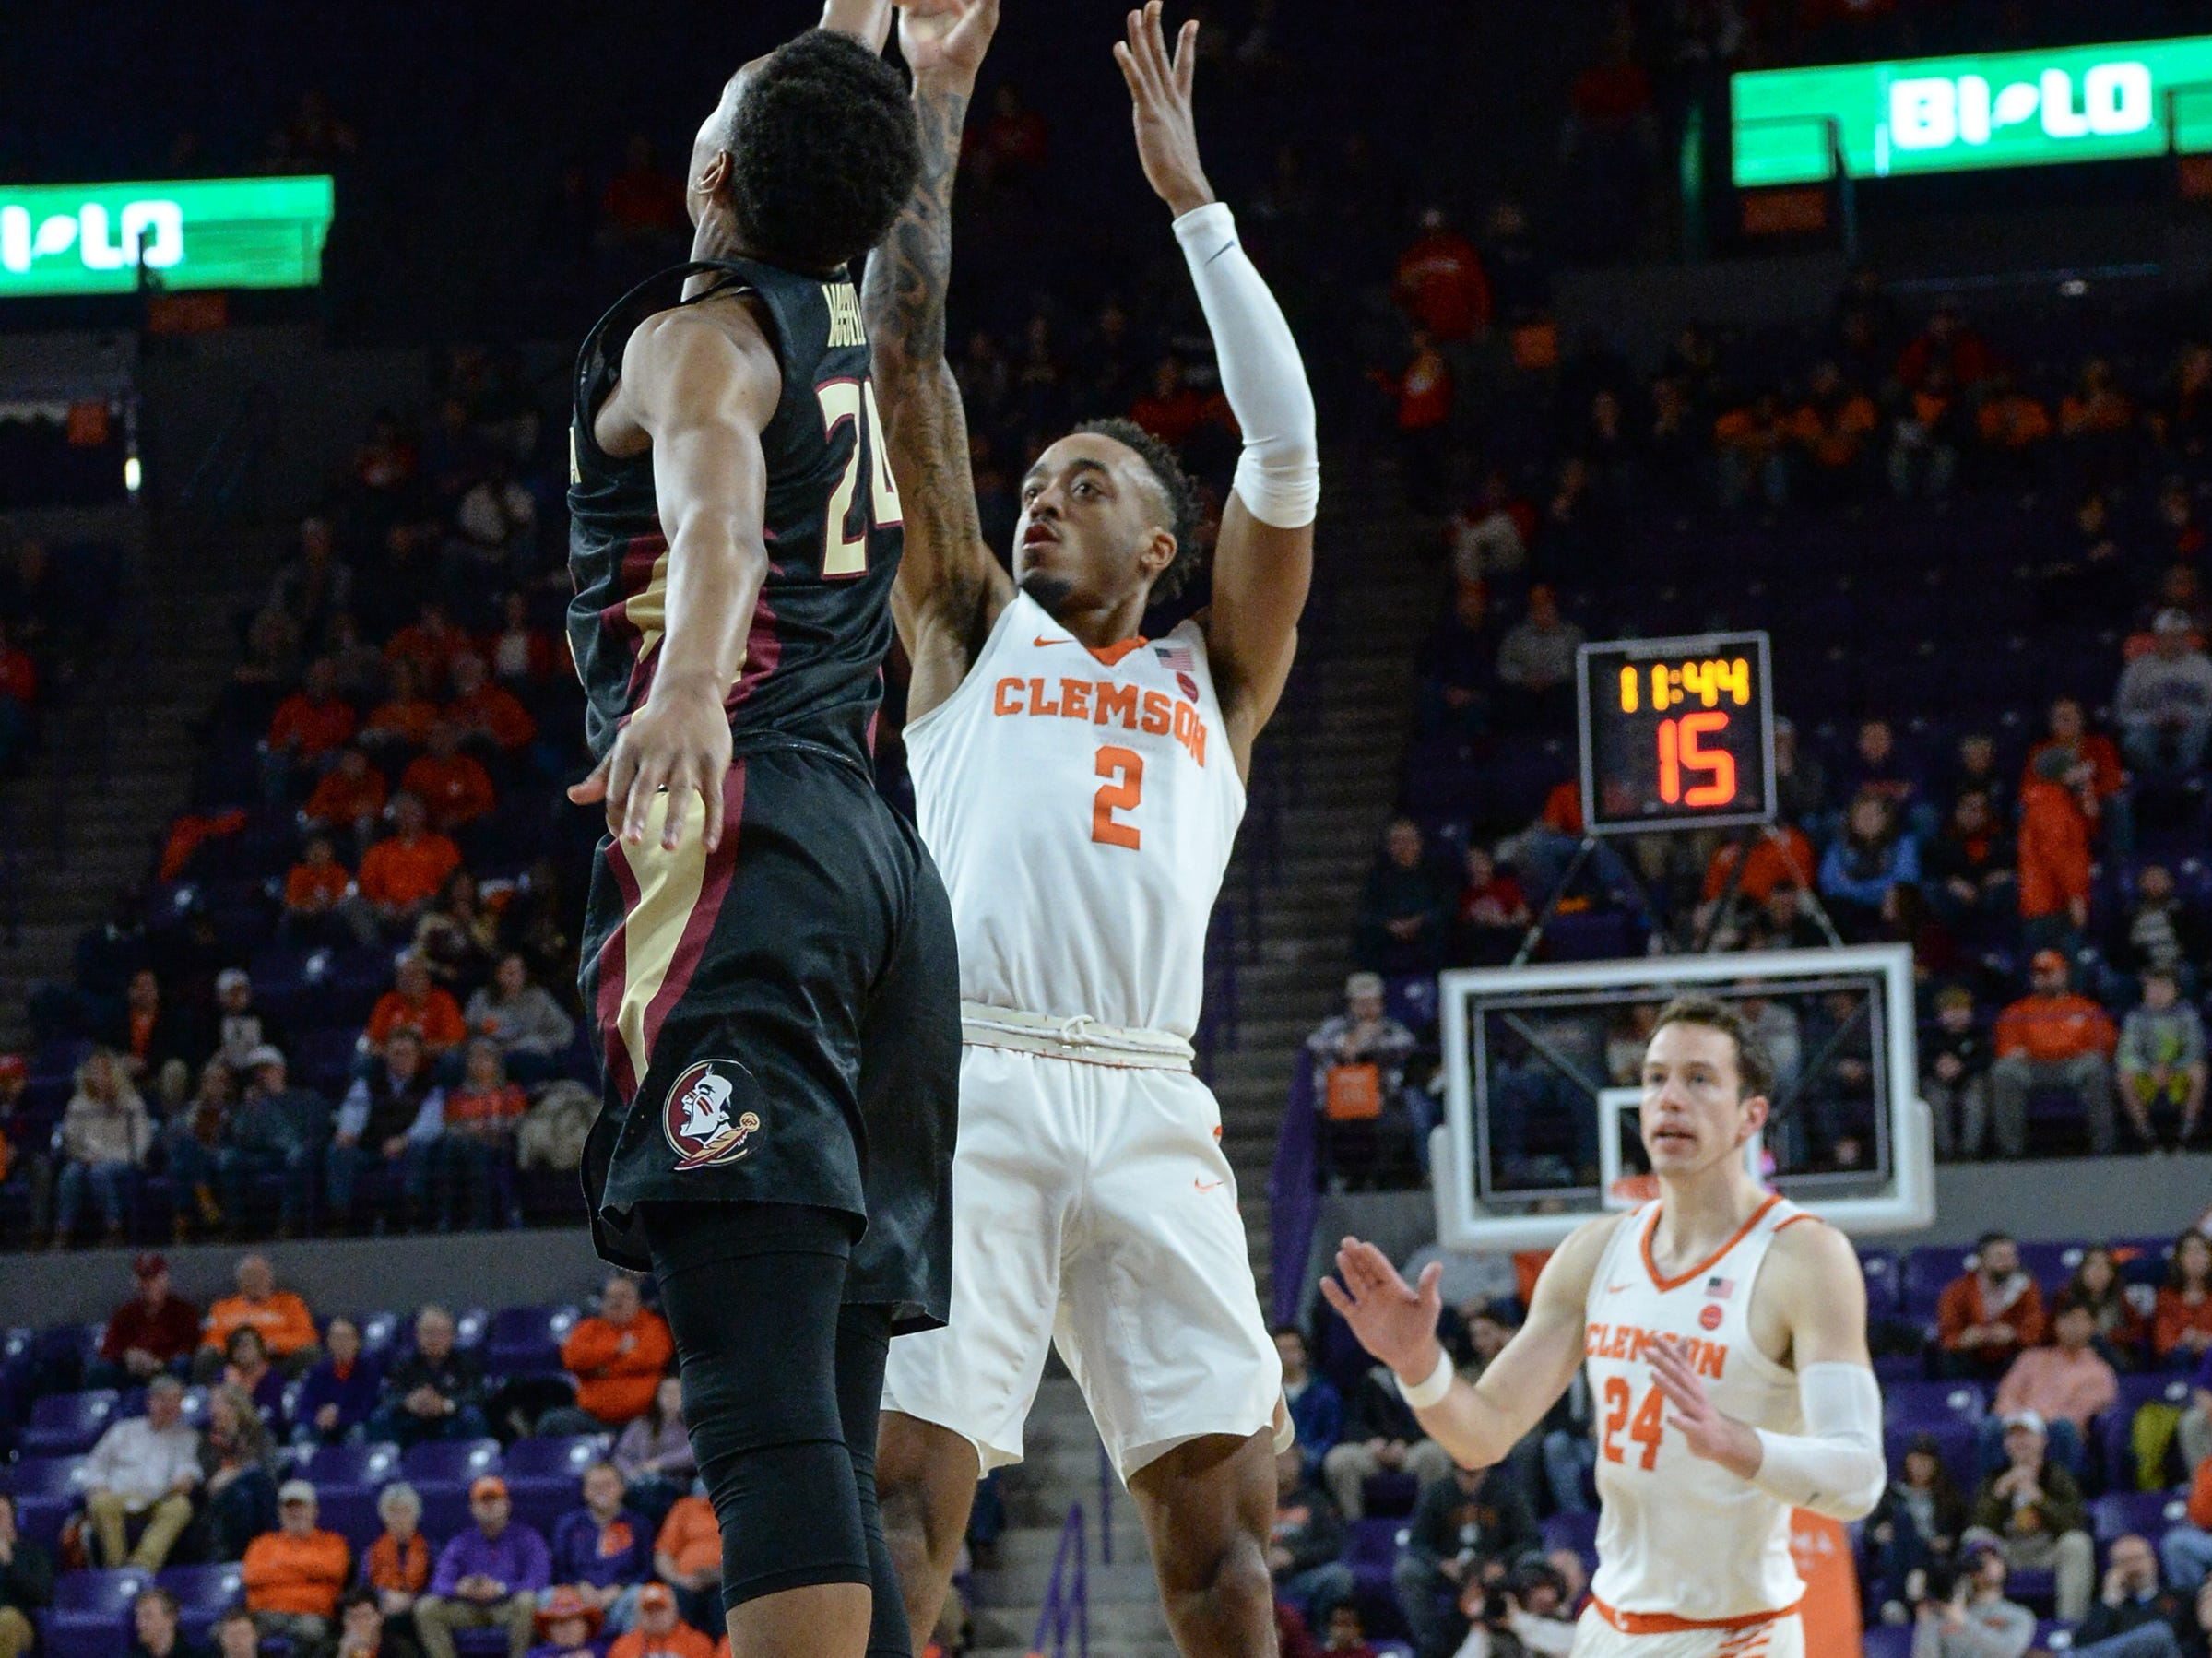 Clemson guard Marcquise Reed (2) shoots near Florida State guard M.J. Walker(23) during the first half at Littlejohn Coliseum in Clemson Tuesday, February 19, 2019.